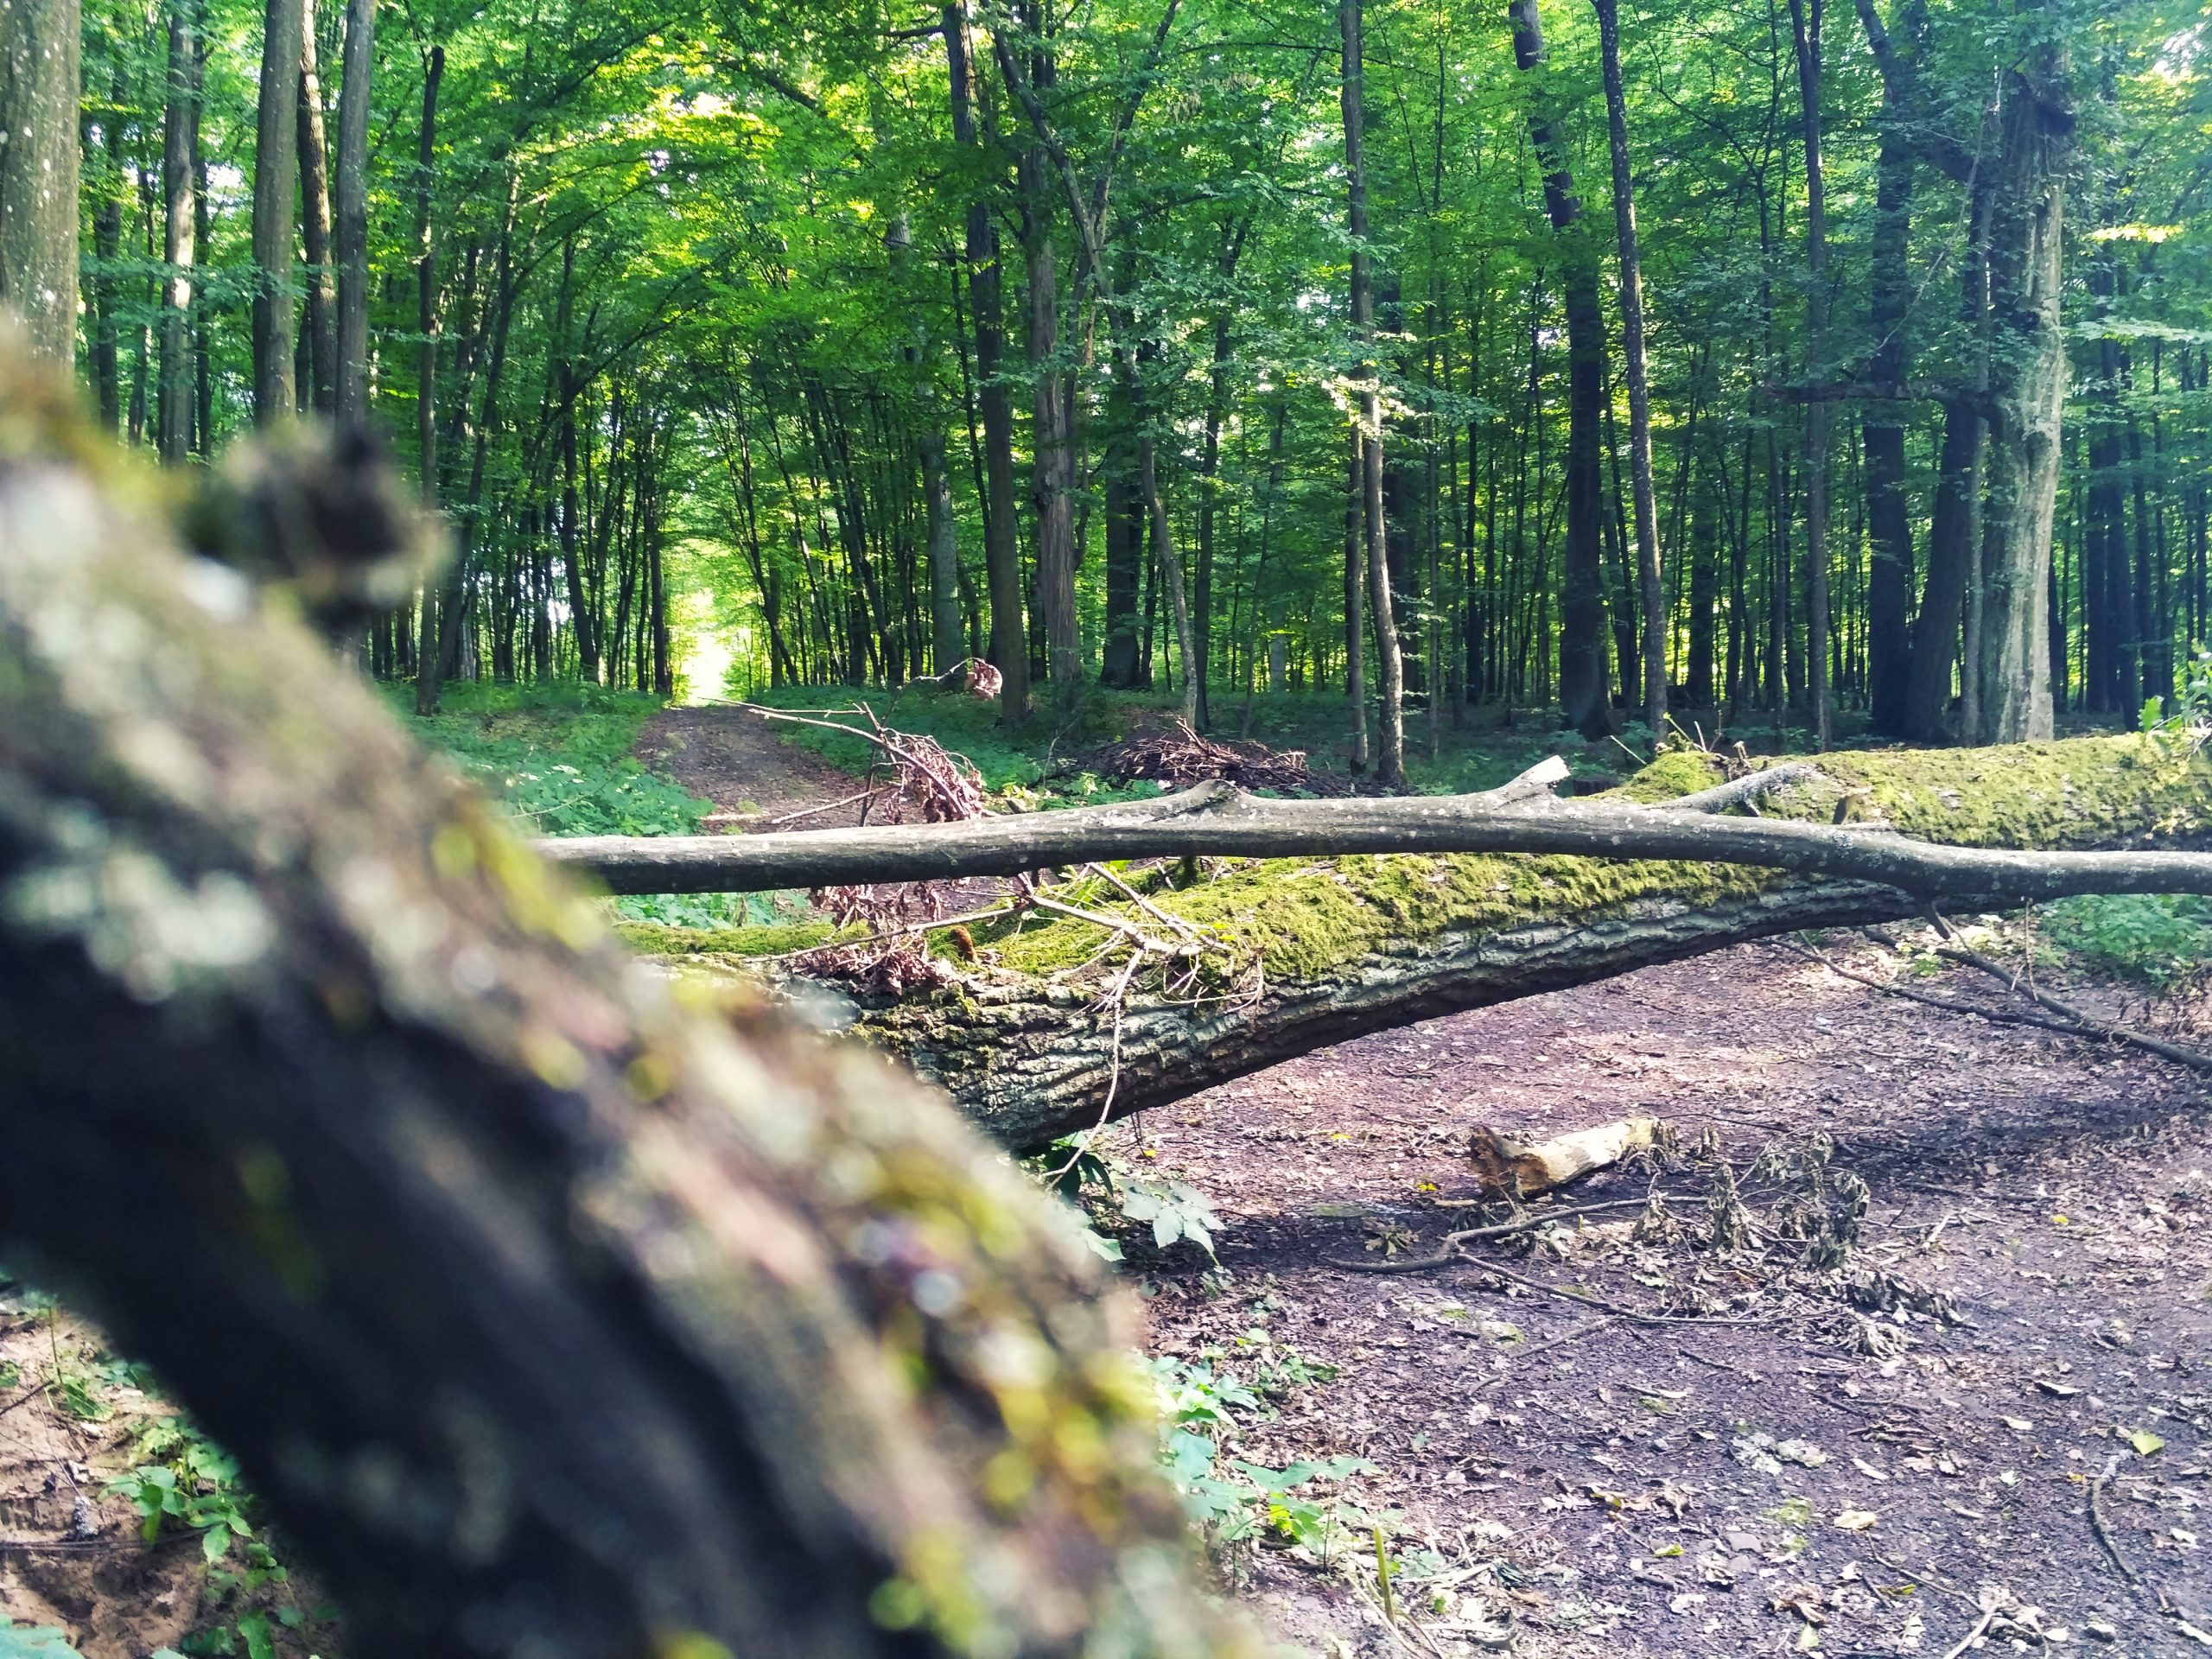 Image of a wooded pathway blocked by a fallen branch symbolizing tough problems